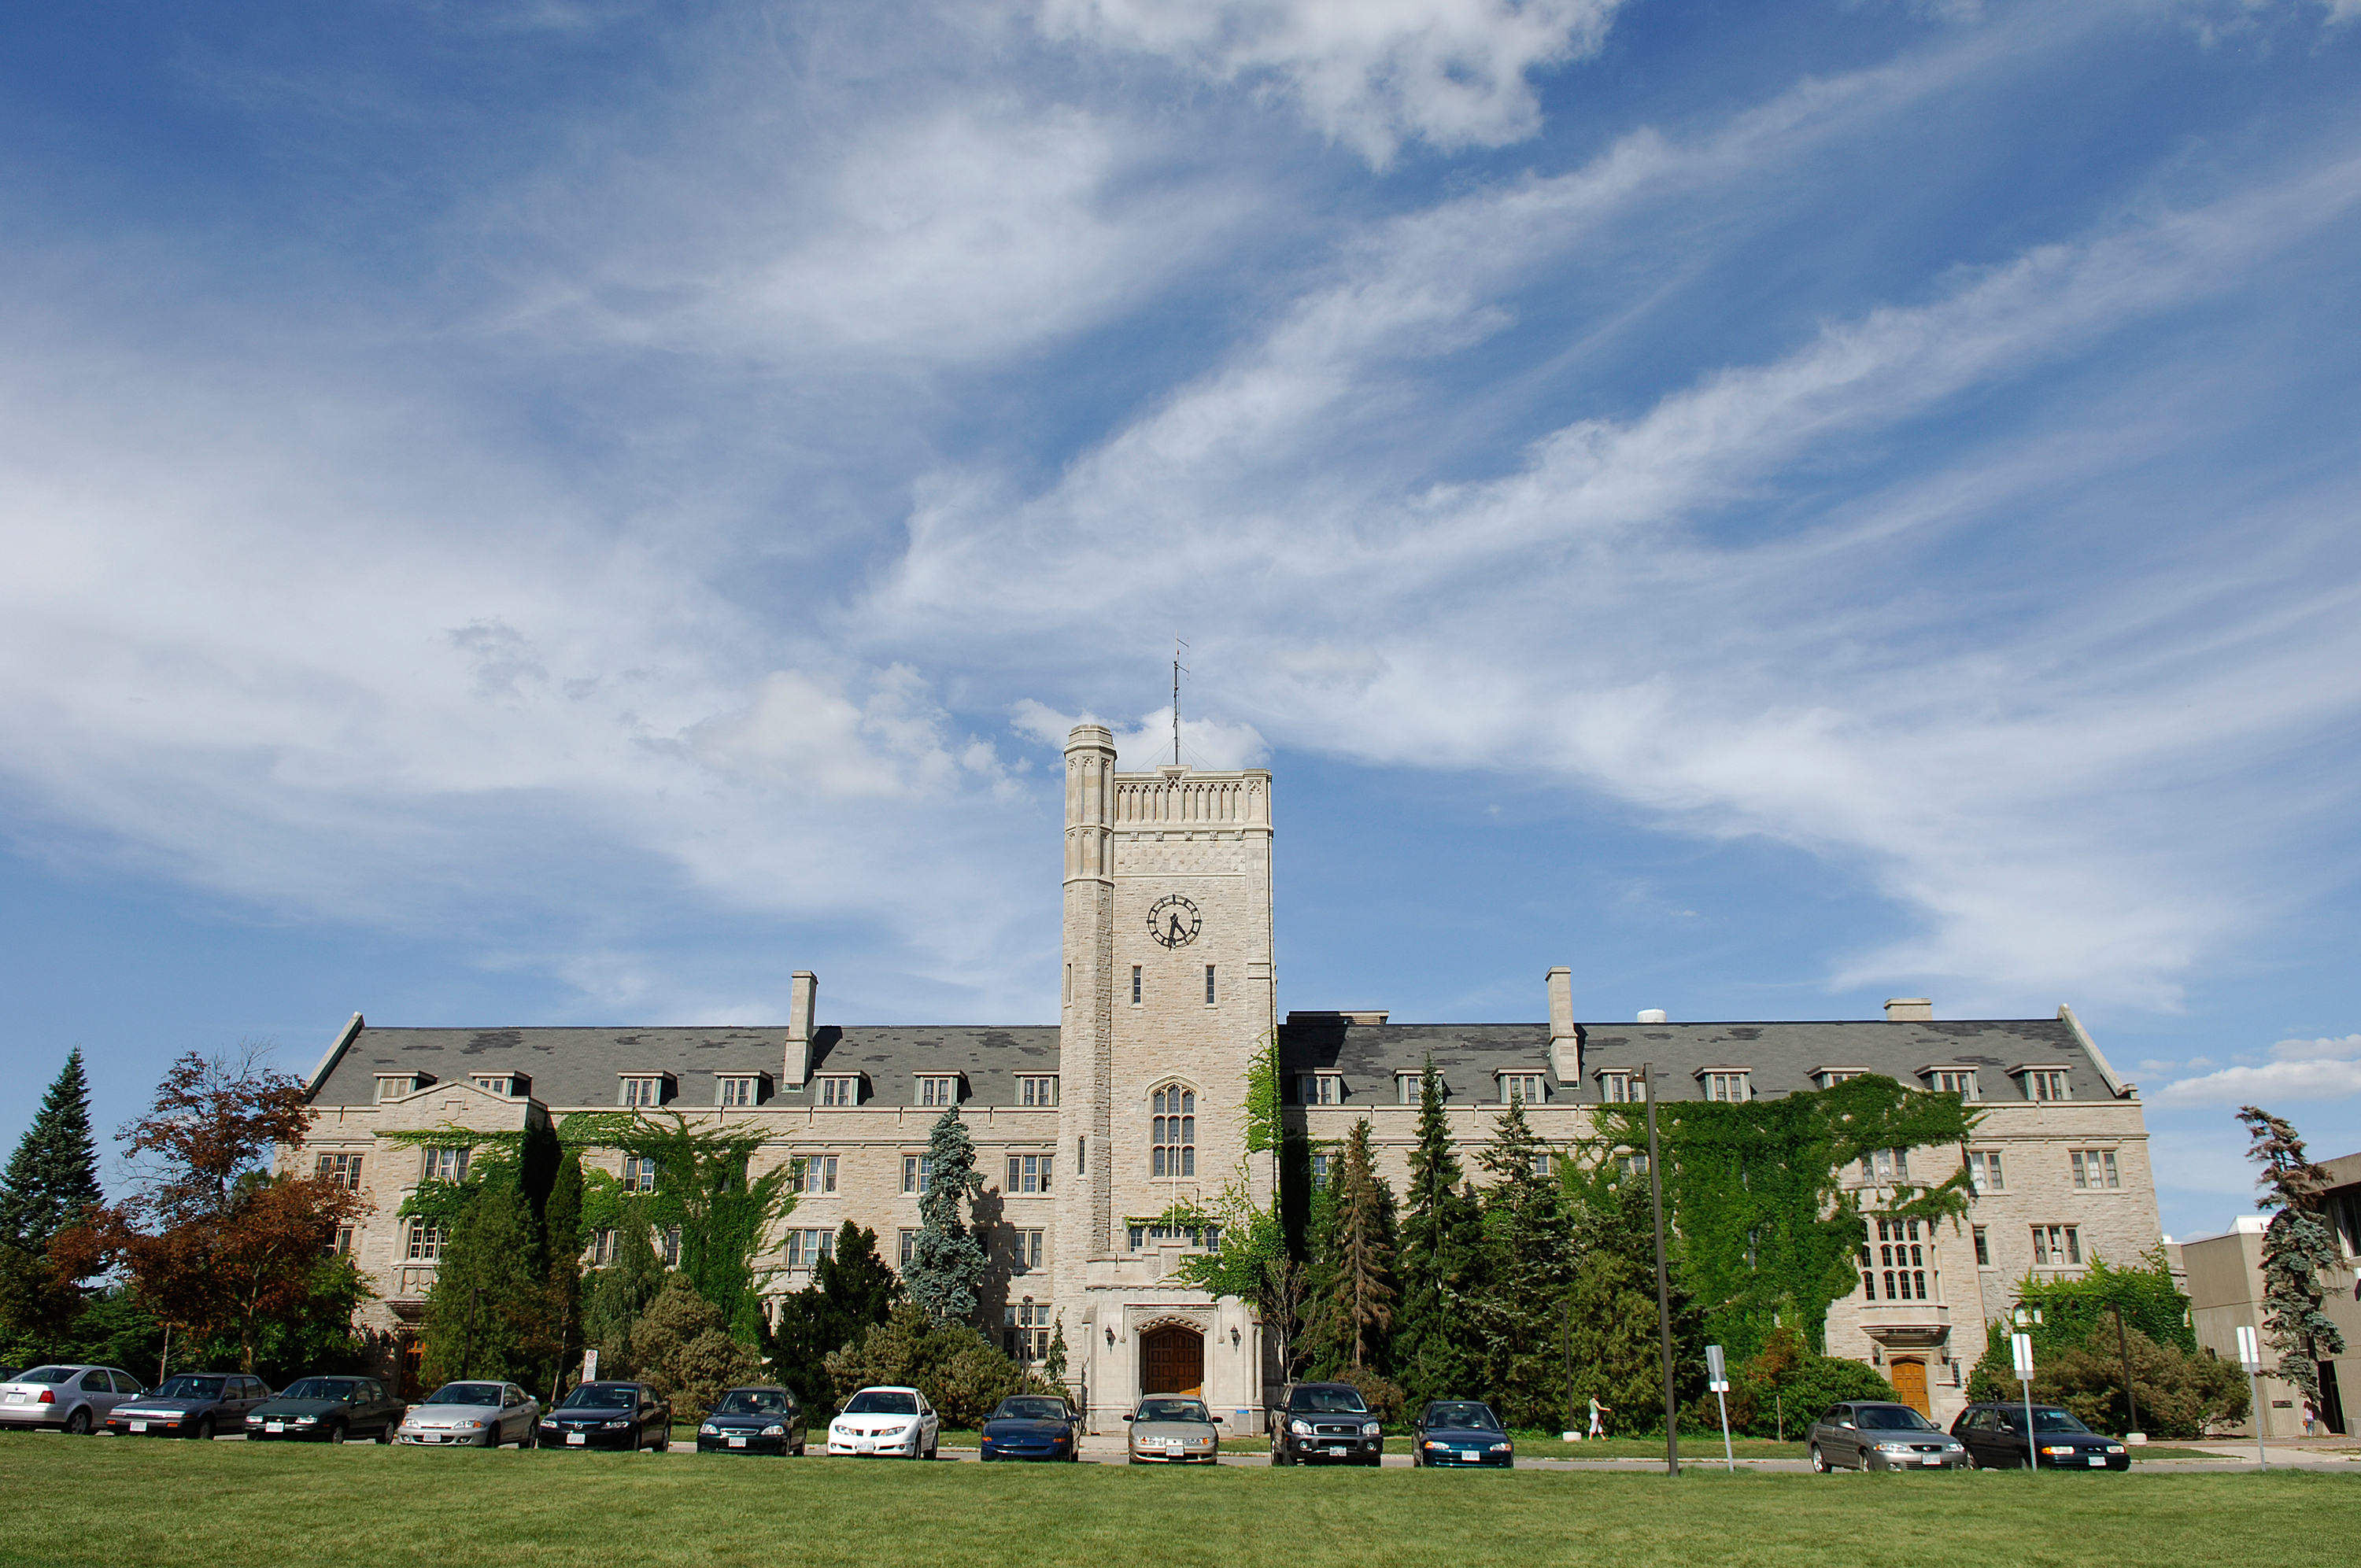 Johnston Hall, University of Guelph